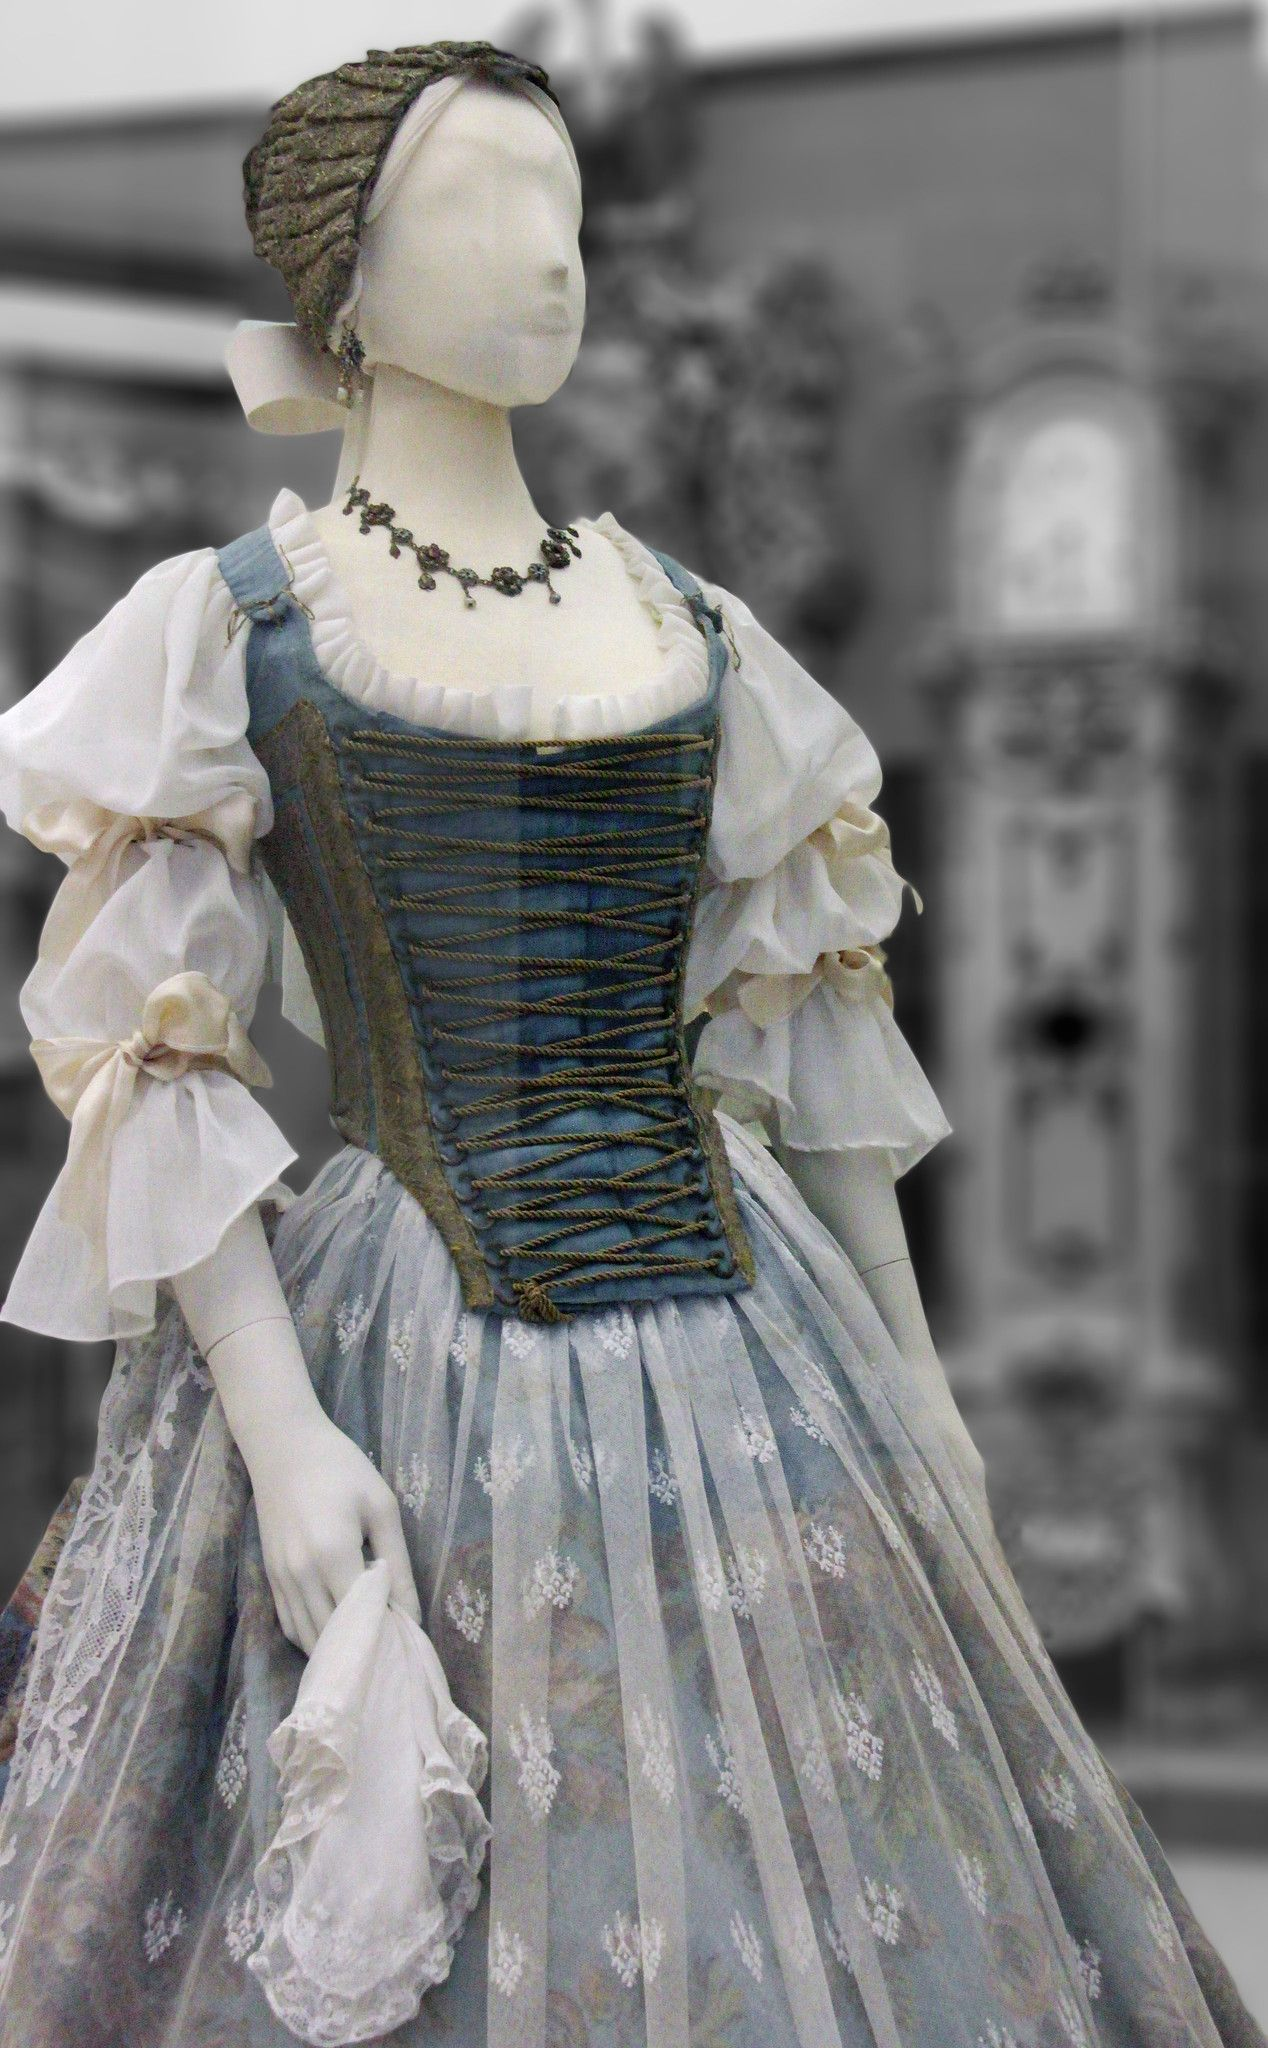 Hungarian 19th Century Costume Historical Dresses 16th Century Fashion Hungarian Clothing